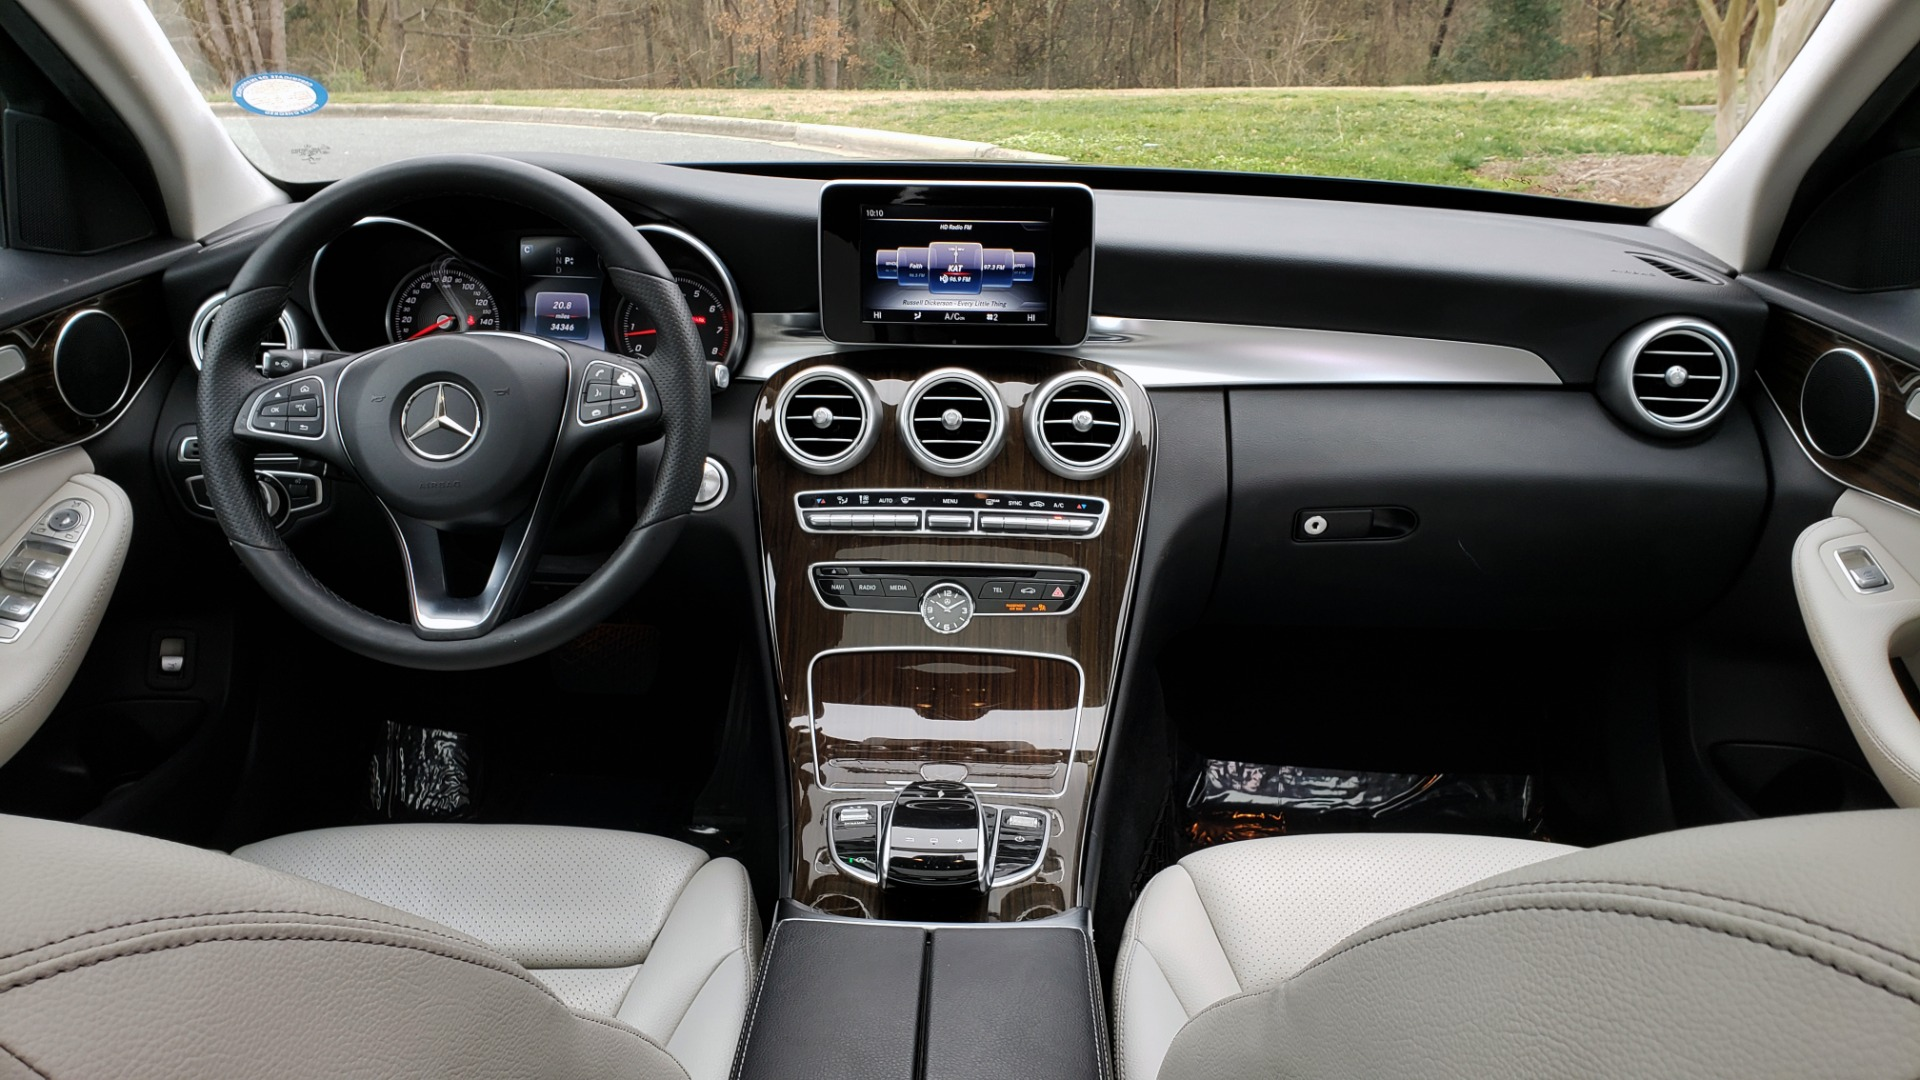 Used 2016 Mercedes-Benz C-CLASS C 300 / PREM PKG / PANO-ROOF / BSA / HTD STS / REARVIEW for sale Sold at Formula Imports in Charlotte NC 28227 70